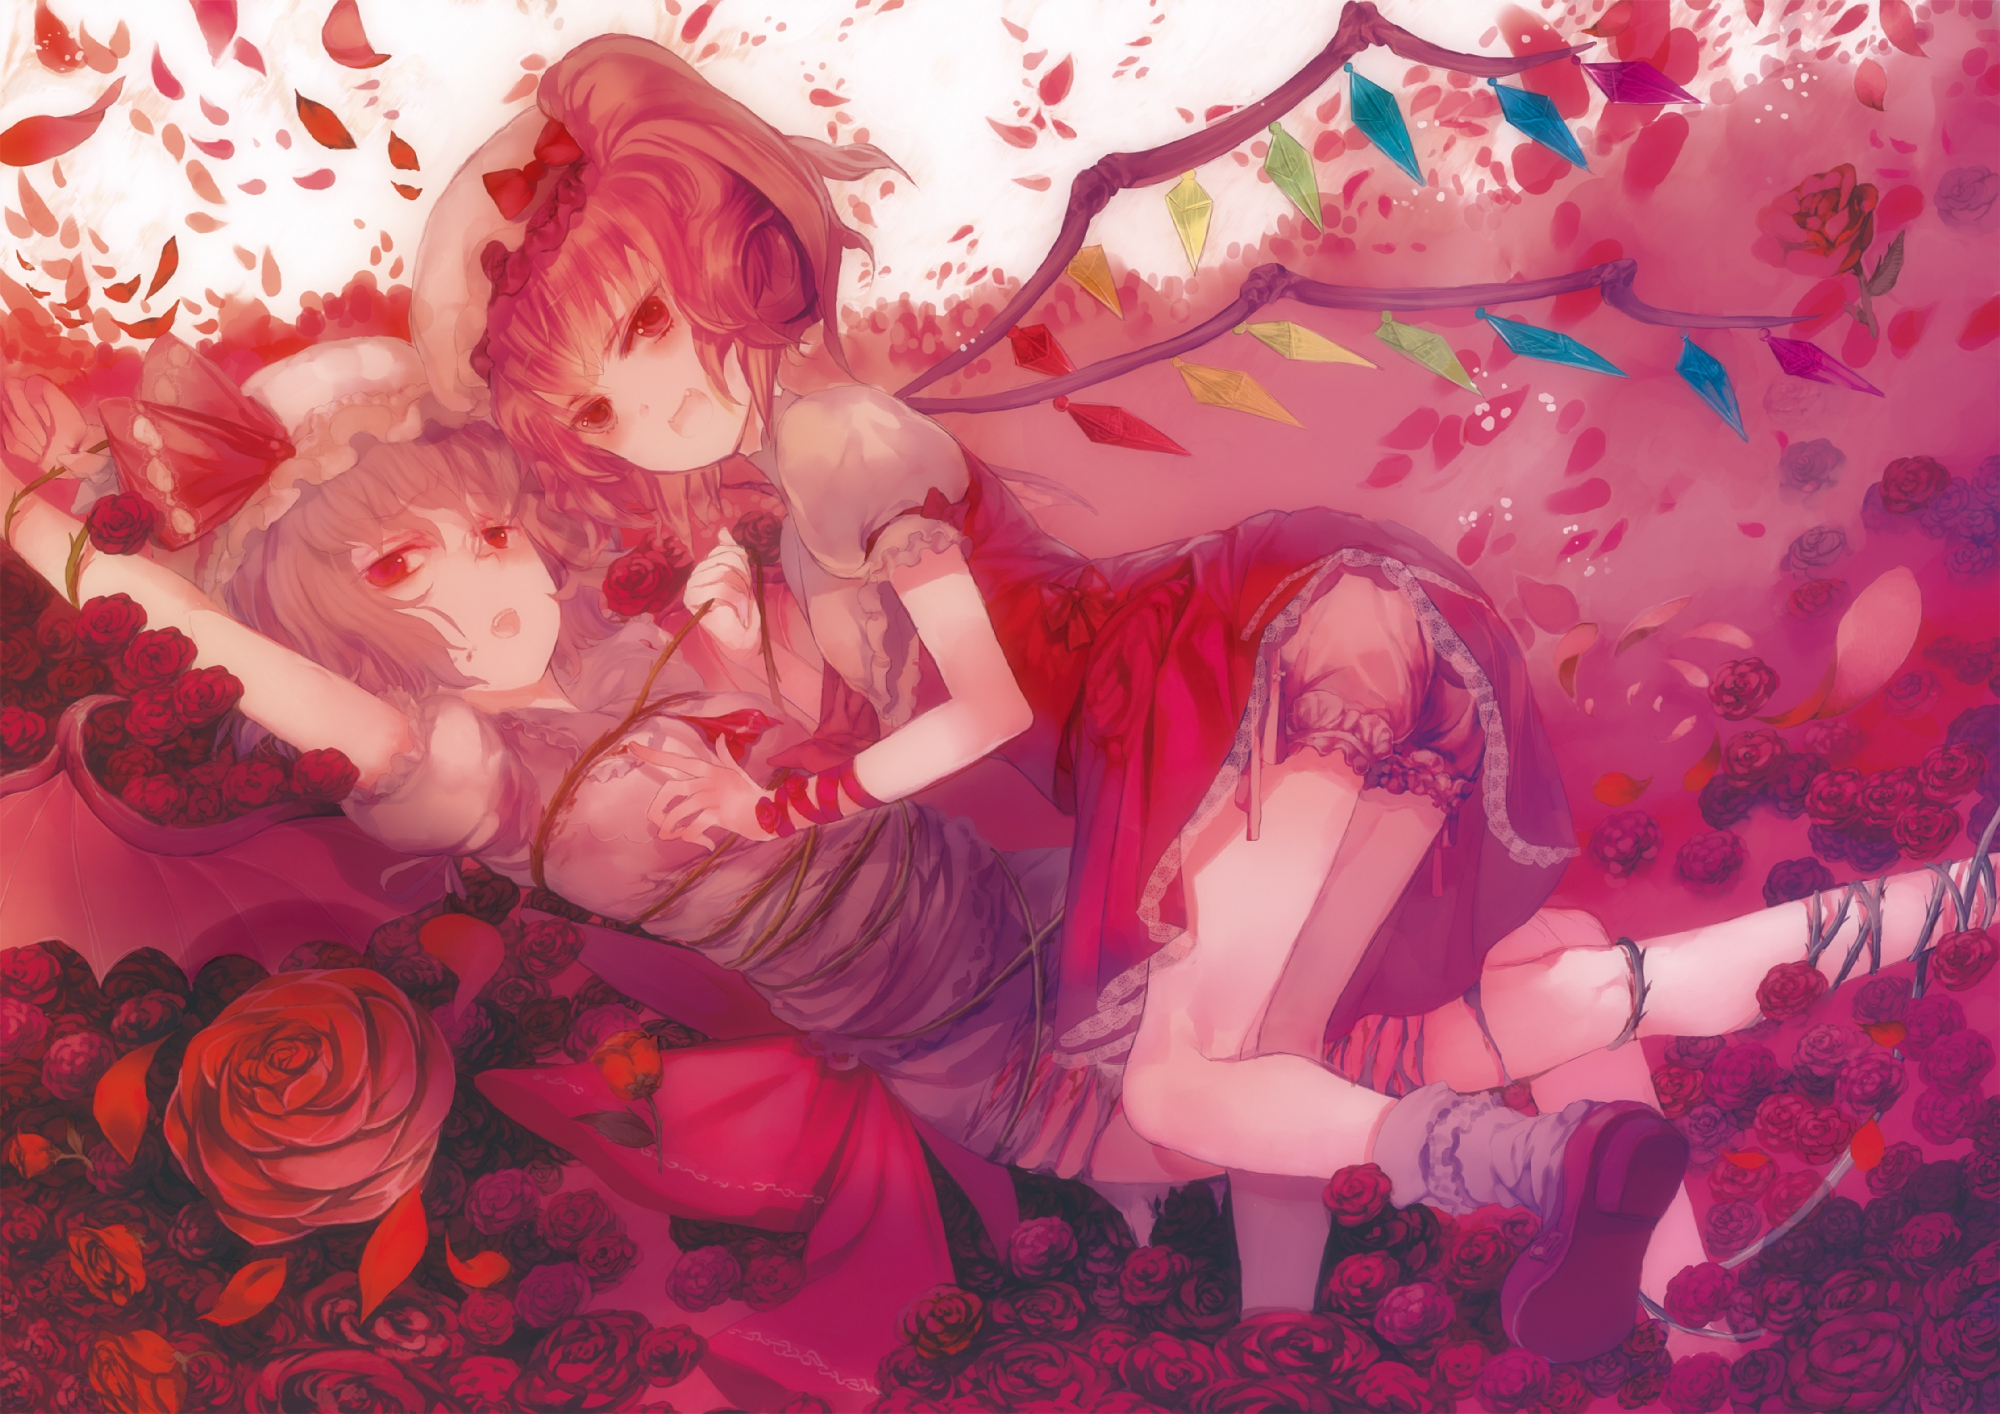 2girls blood bloomers bondage dress fang flandre_scarlet flowers hat leiror red_eyes remilia_scarlet rose torn_clothes touhou vampire wings